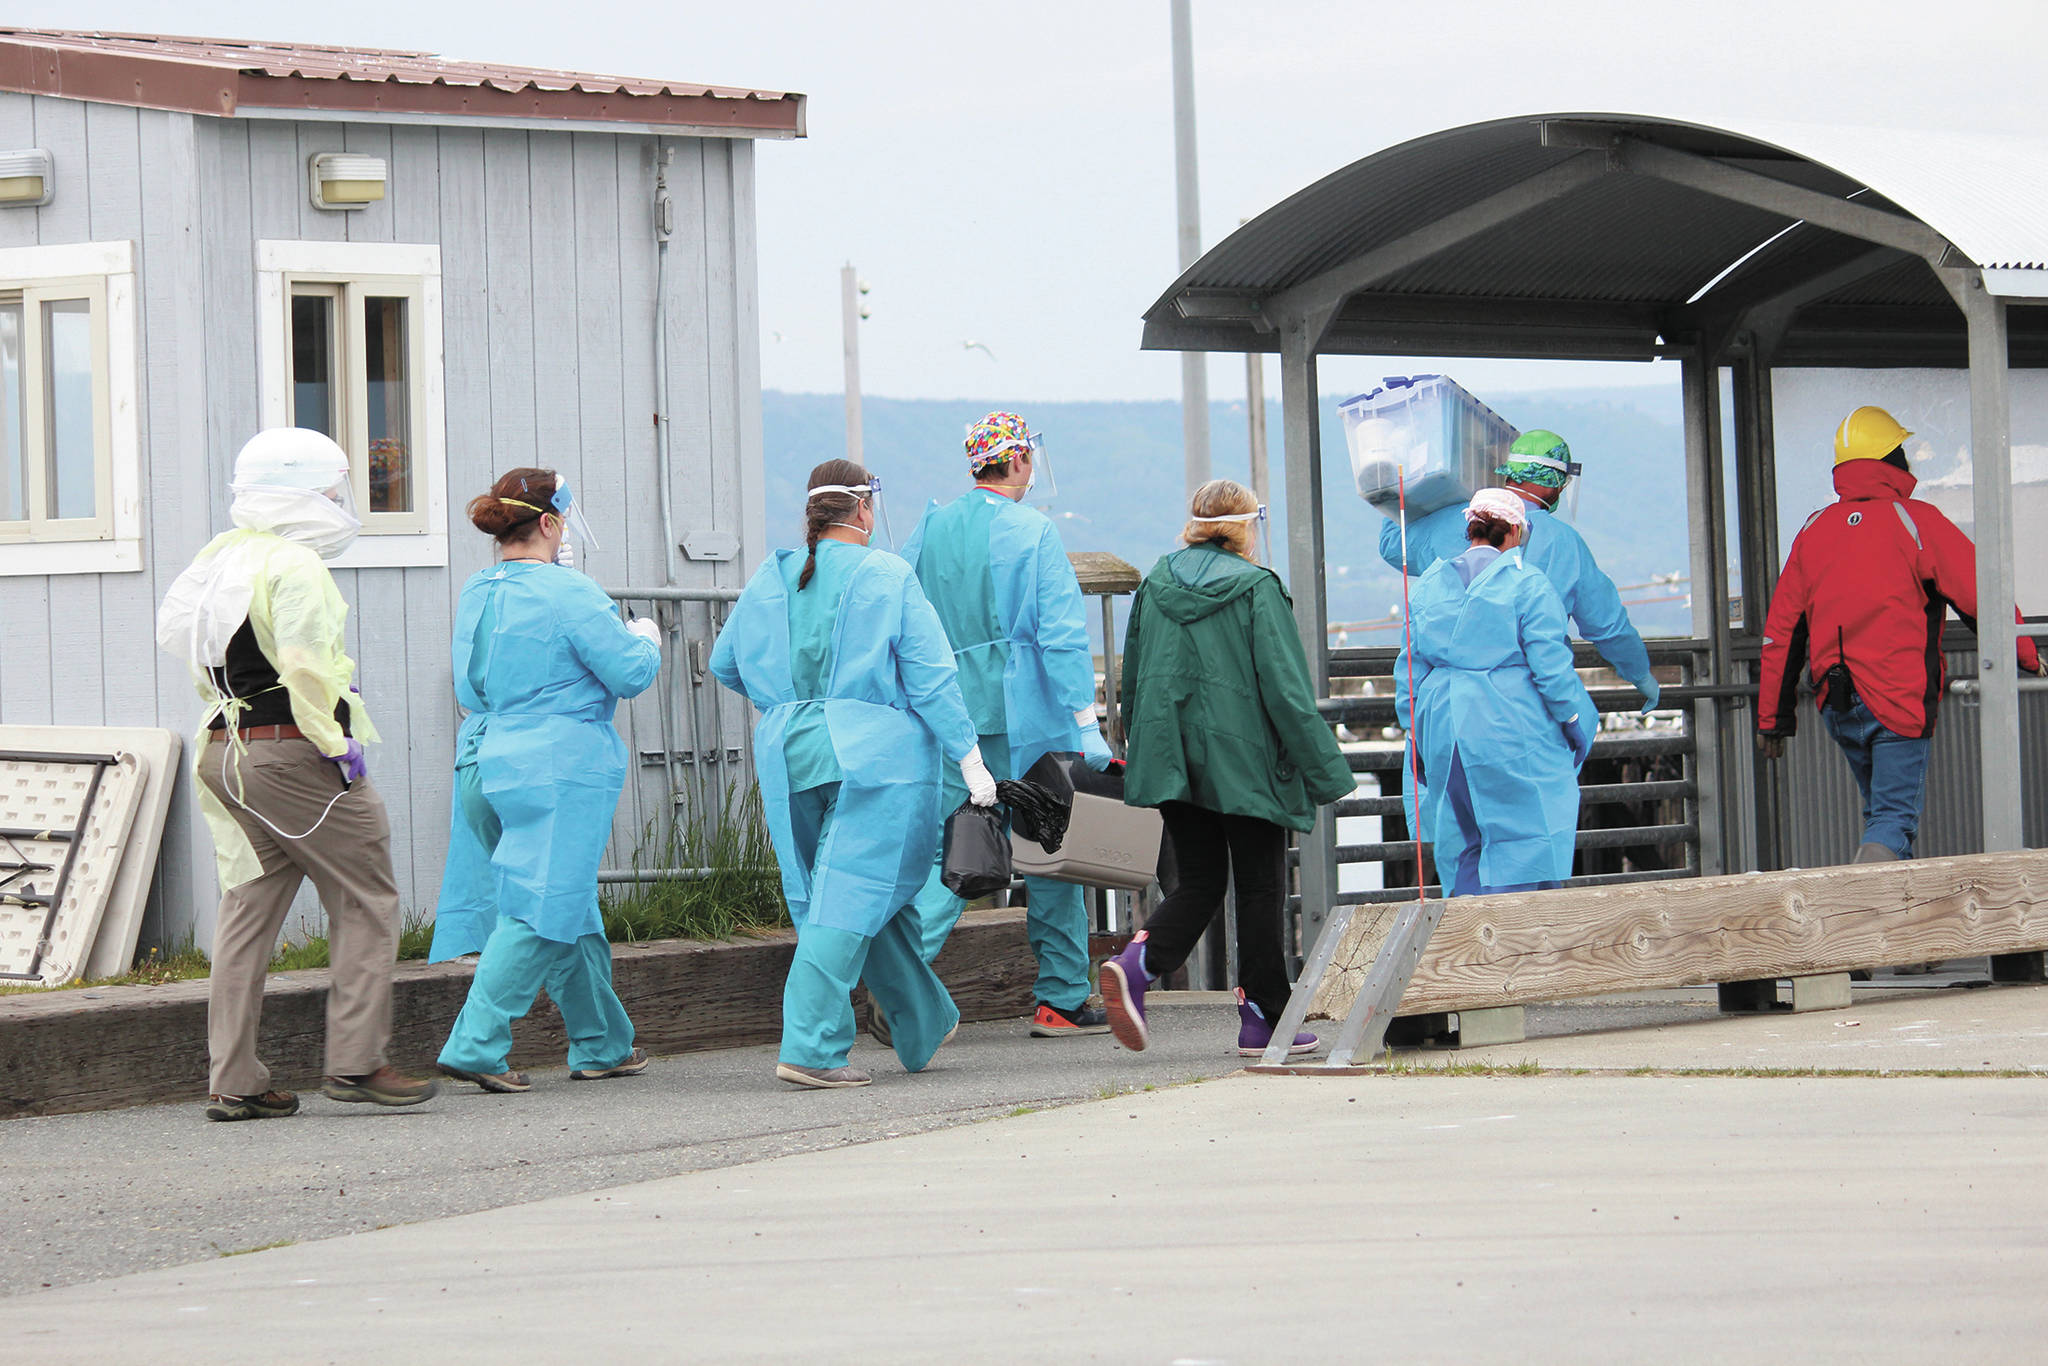 Staff from South Peninsula Hospital and Homer Public Health prepare to board the M/V Tustumena to test 35 crew and six passengers after it docked at the Homer Ferry Terminal on Monday, June 8, 2020 in Homer, Alaska. The ship carried one crew member who tested positive for COVID-19 on Saturday in Dutch Harbor. Health workers tested people on board the ship when it arrived, and crew and passengers were only allowed to disembark if they had private transportation to their final quarantine destination. (Photo by Megan Pacer/Homer News)